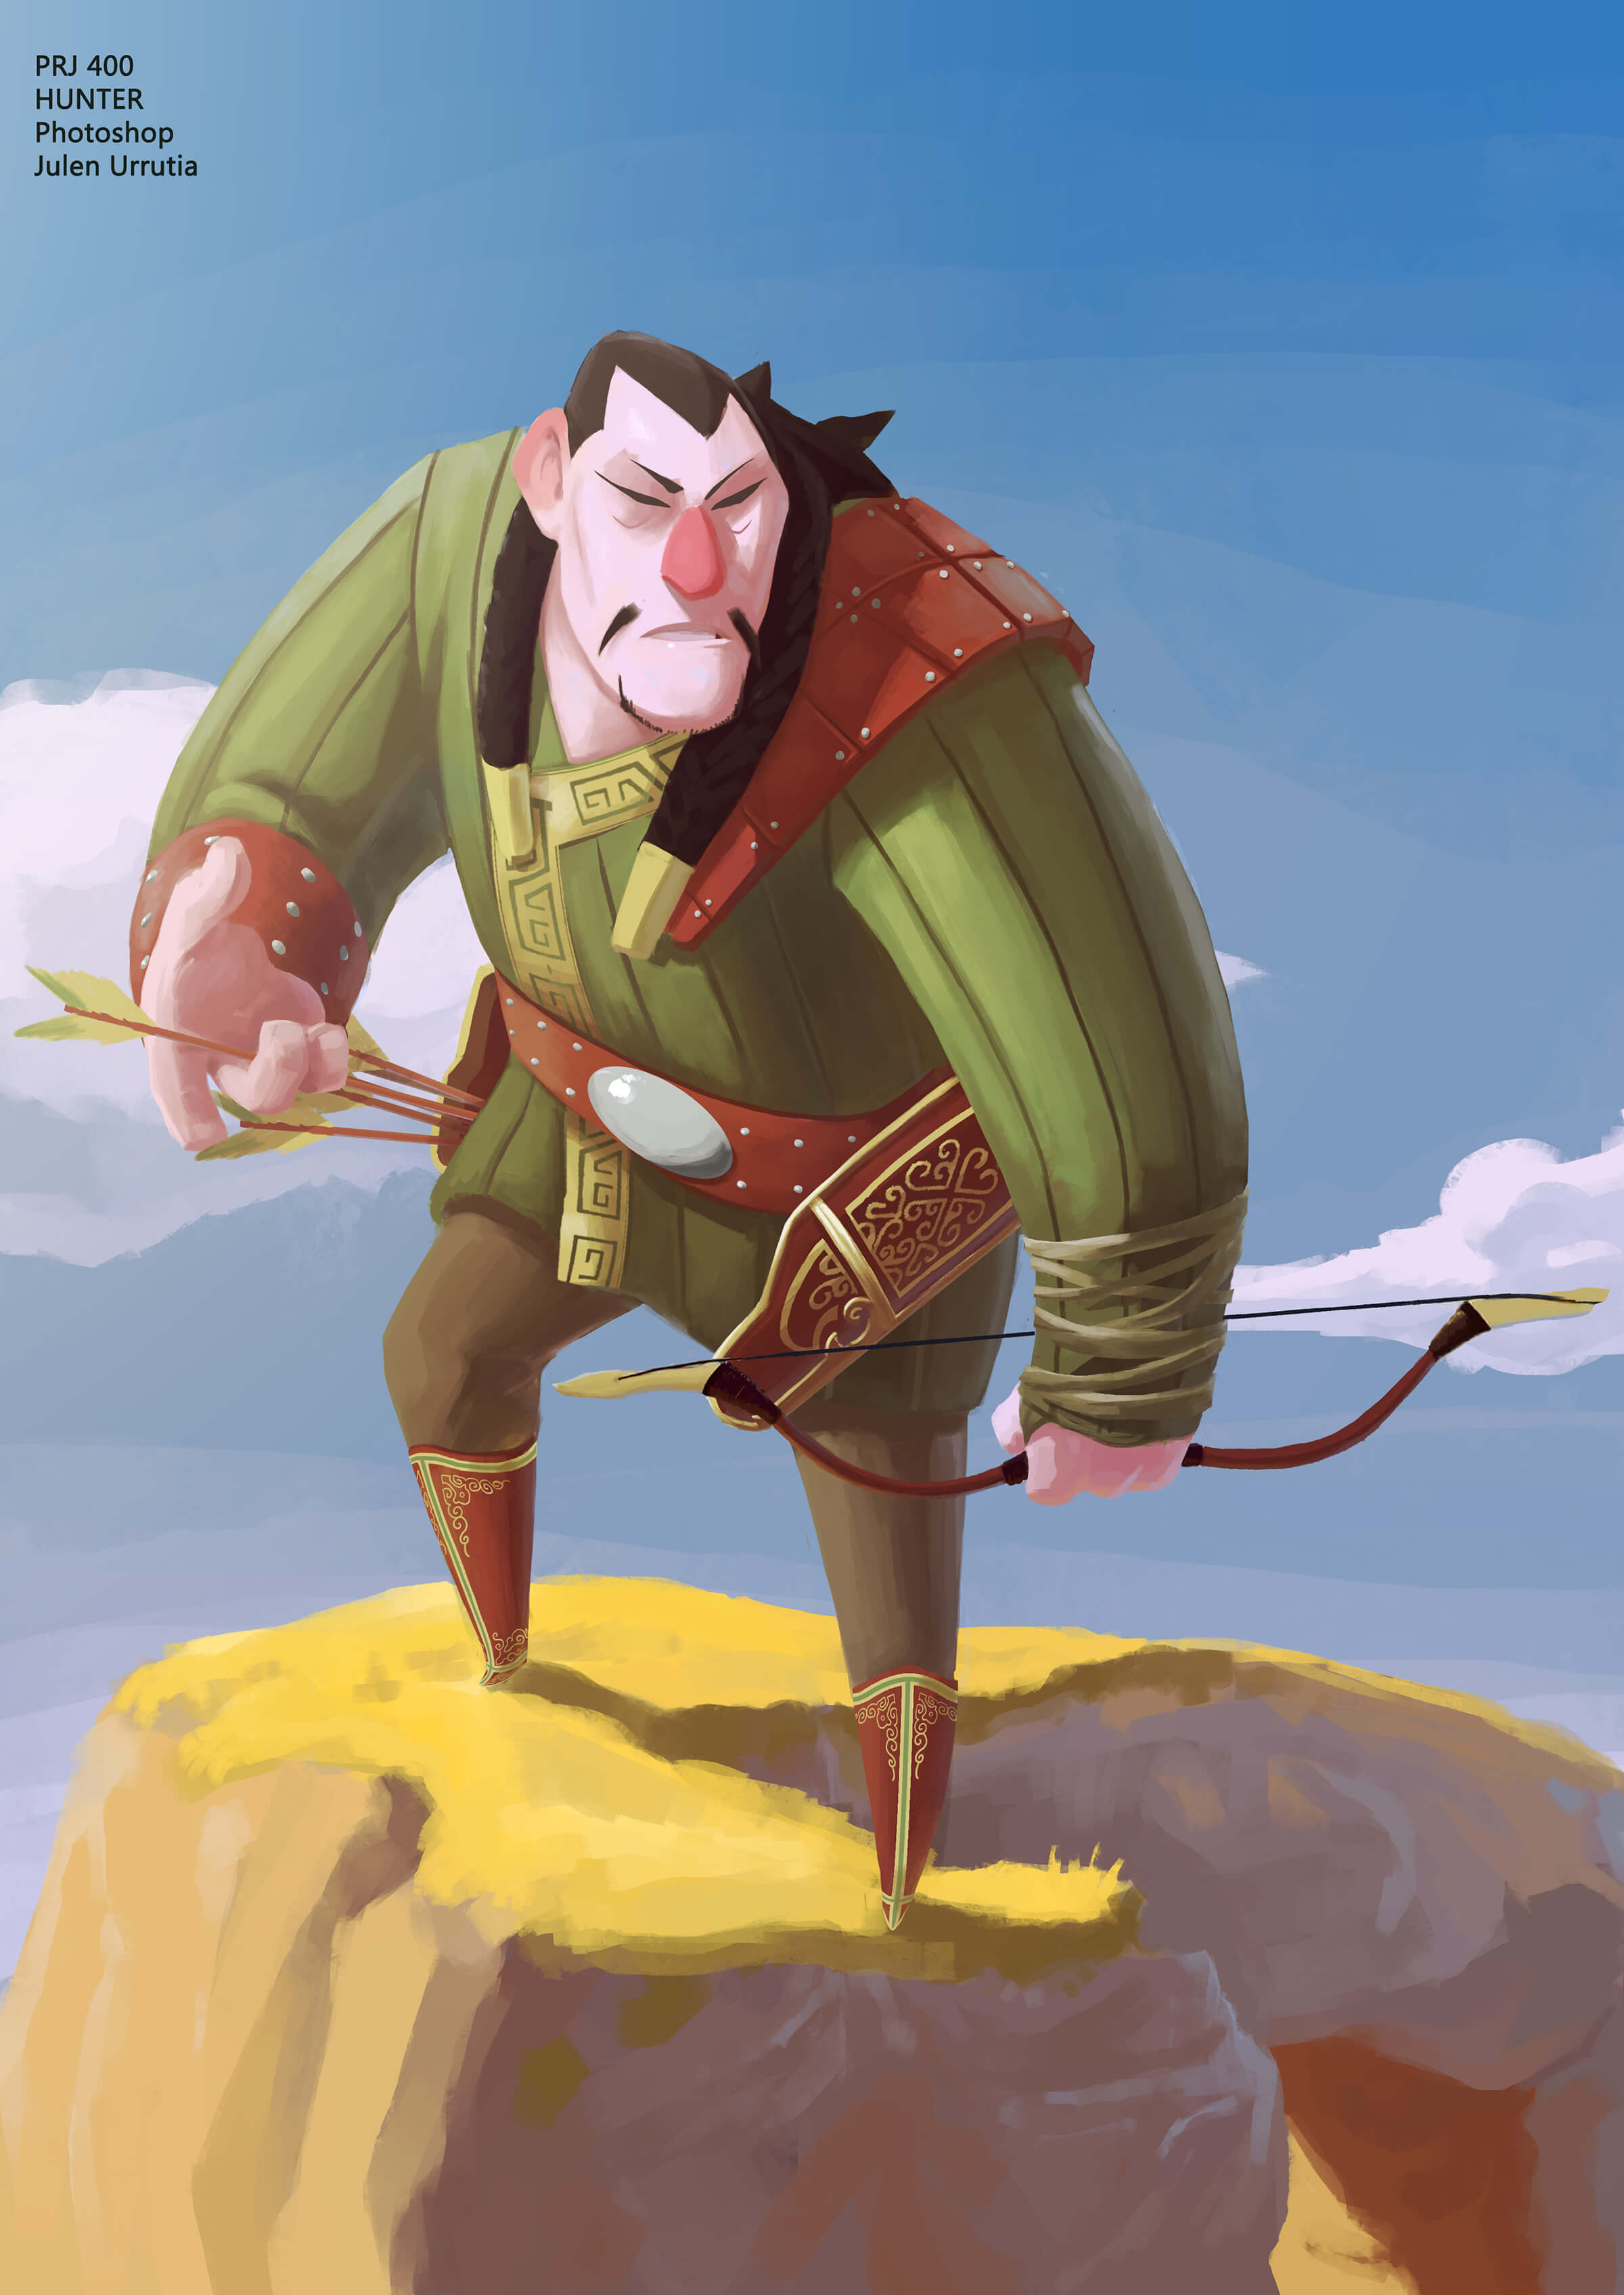 A hulking hunter in traditional dress stands atop a rock looking down as he draws an arrow to shoot with his bow.